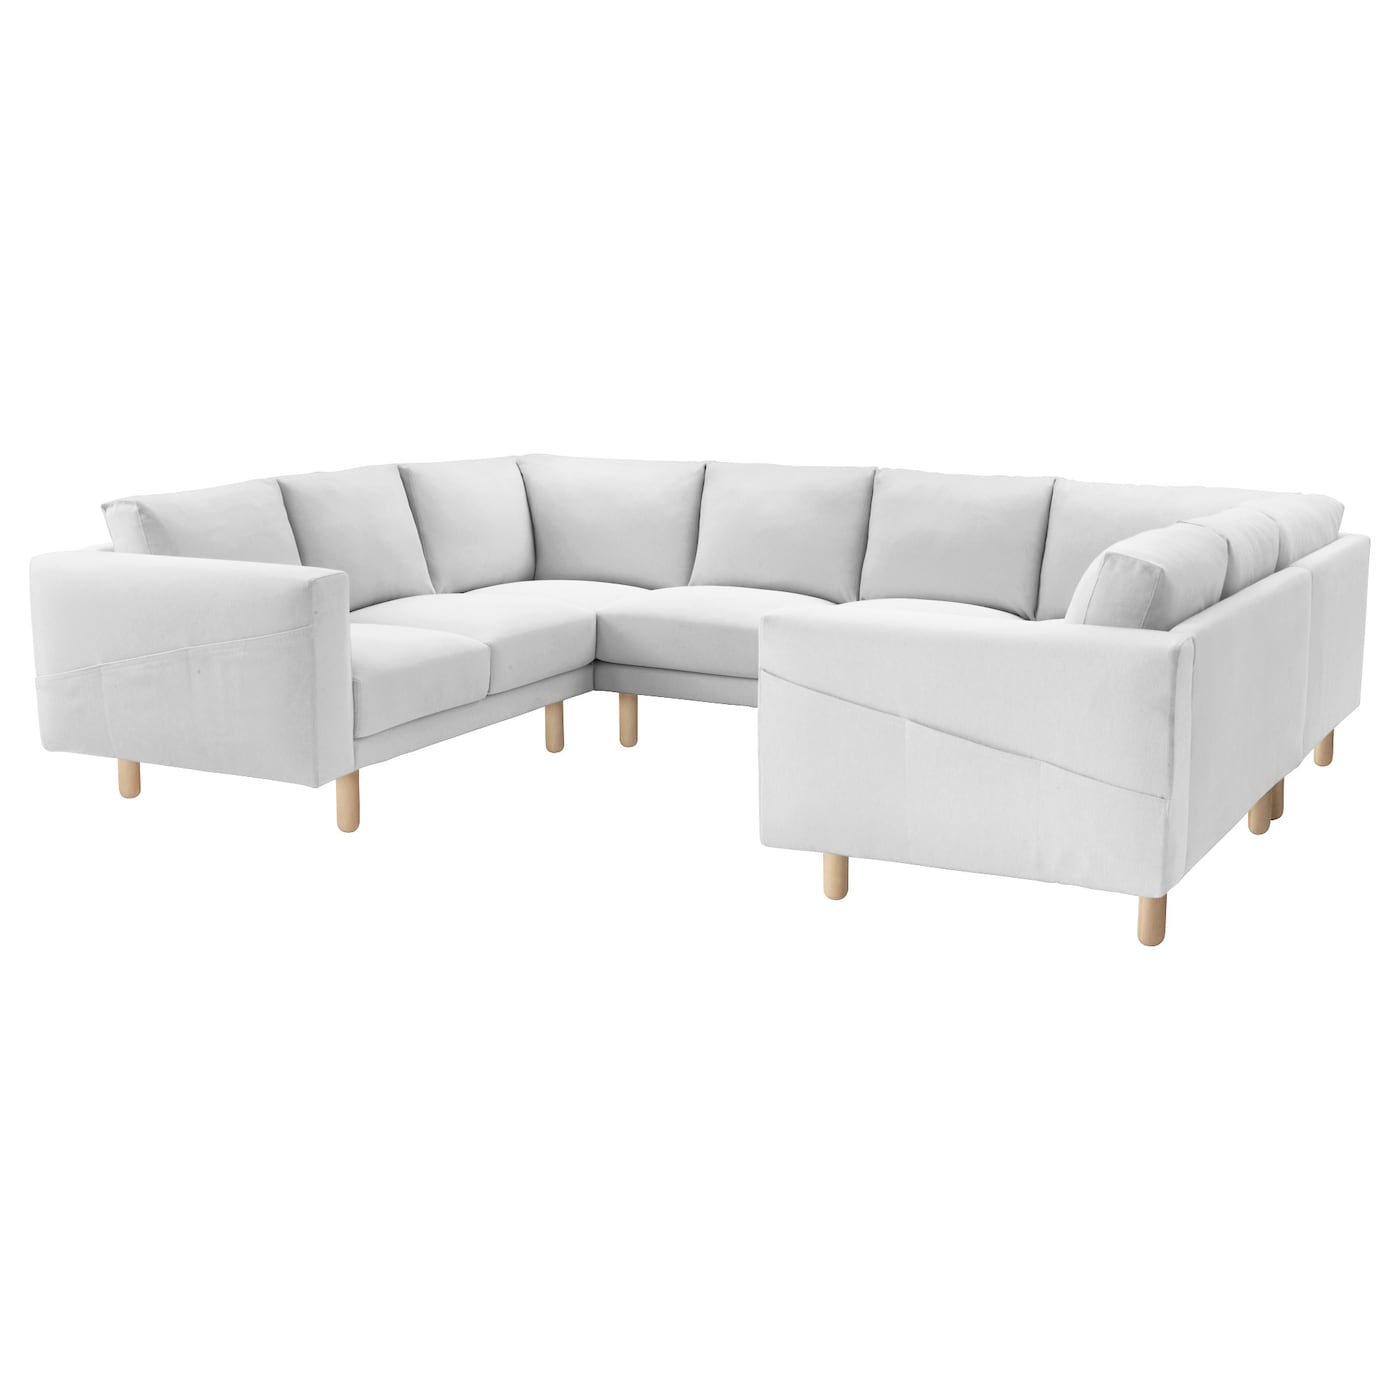 norsborg u shaped sofa 6 seat finnsta white birch ikea. Black Bedroom Furniture Sets. Home Design Ideas